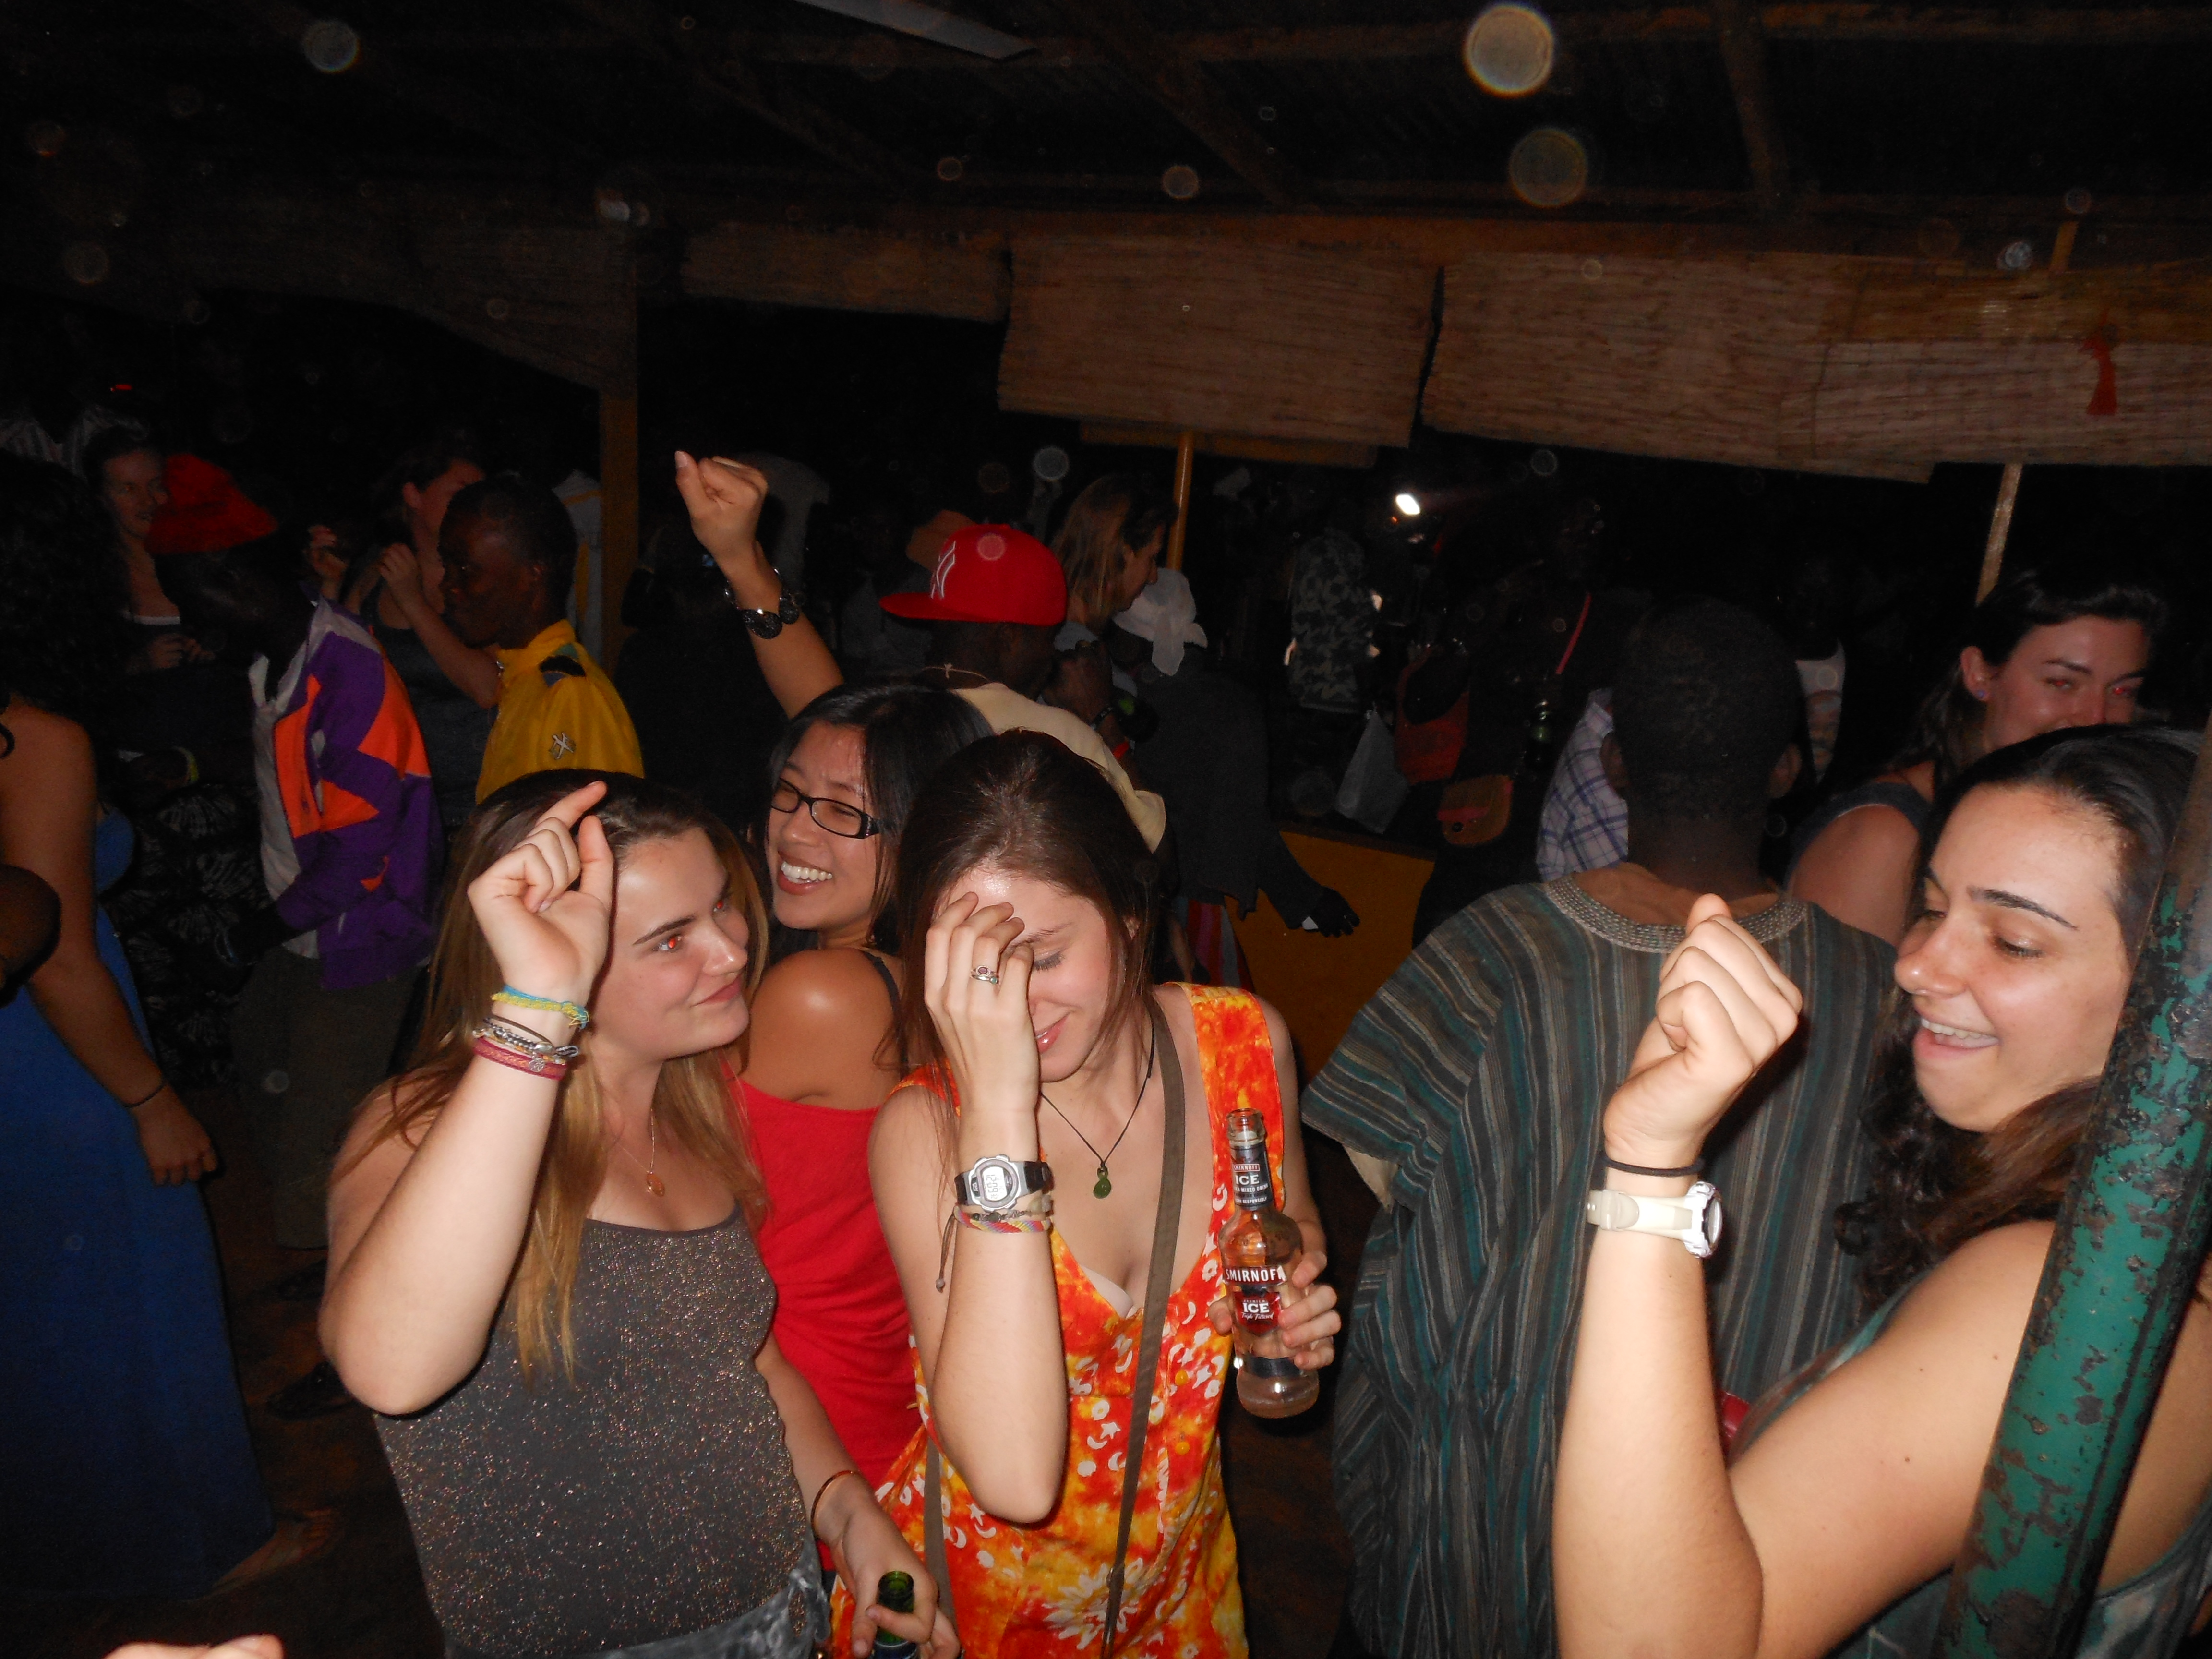 Alexa, Linda, Julia, and Emily getting their groove on at Sparkles